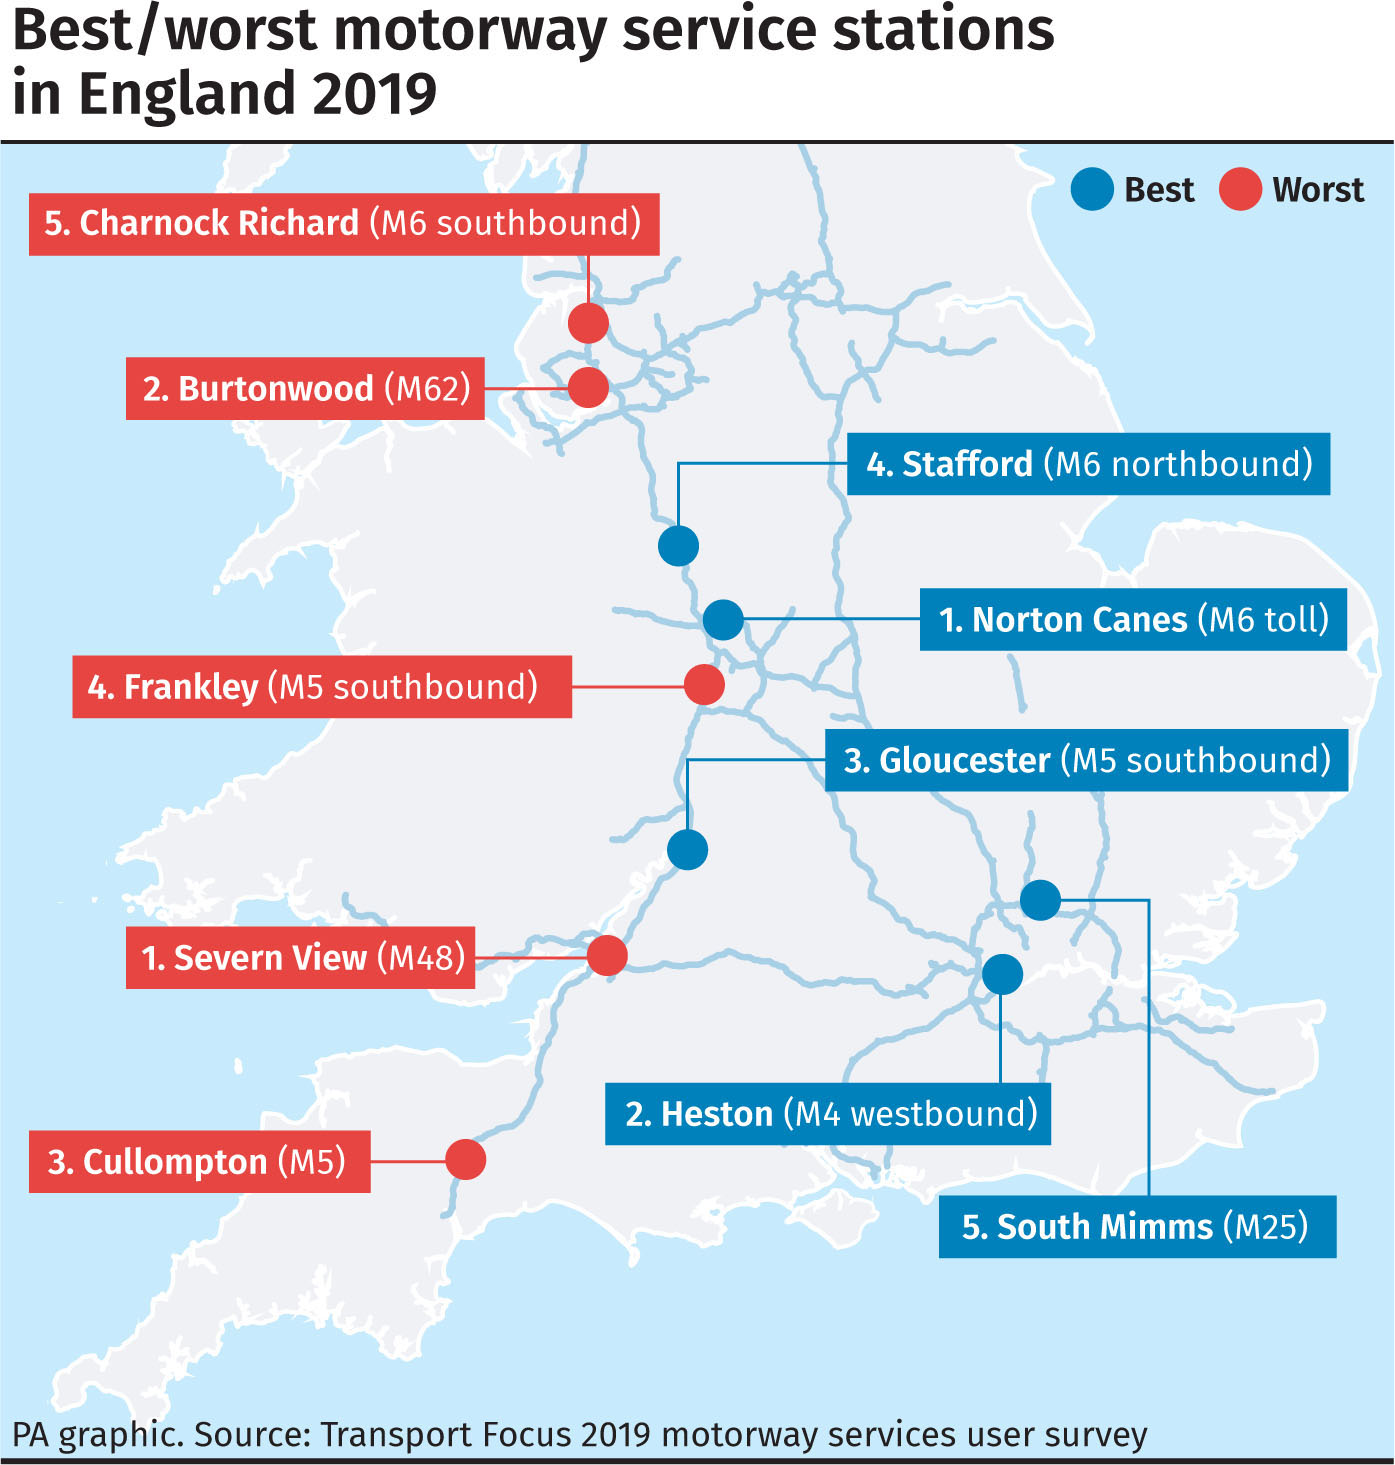 Best/worst motorway service stations in England 2019